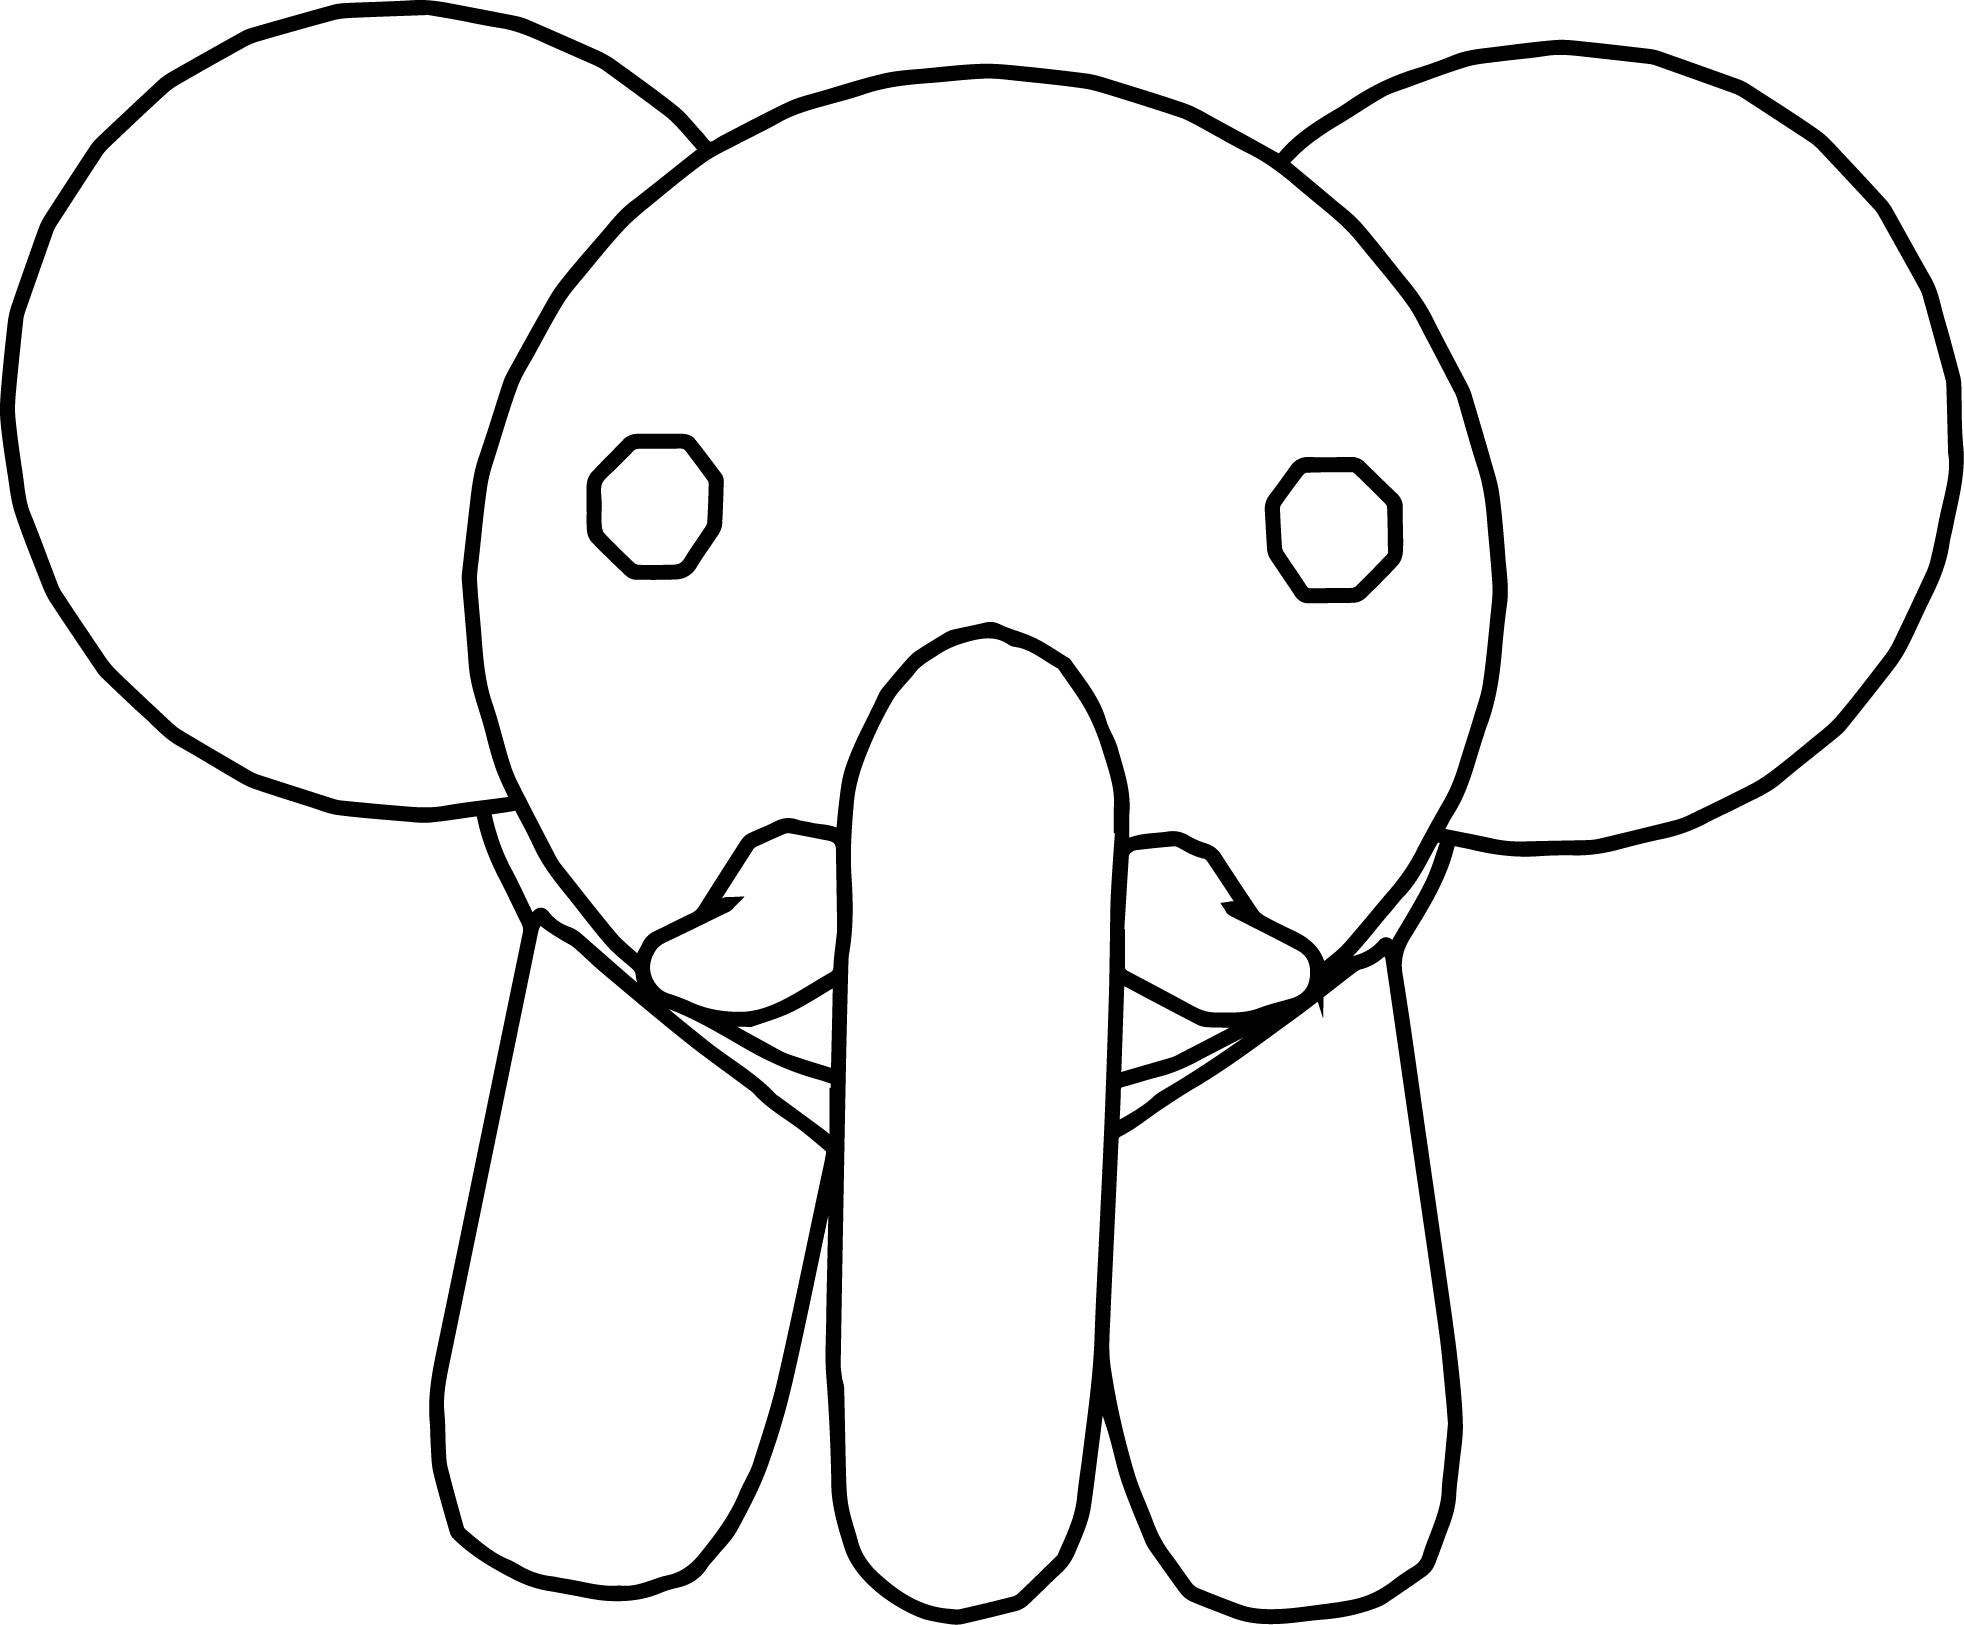 Elephant Face Front View Coloring Page